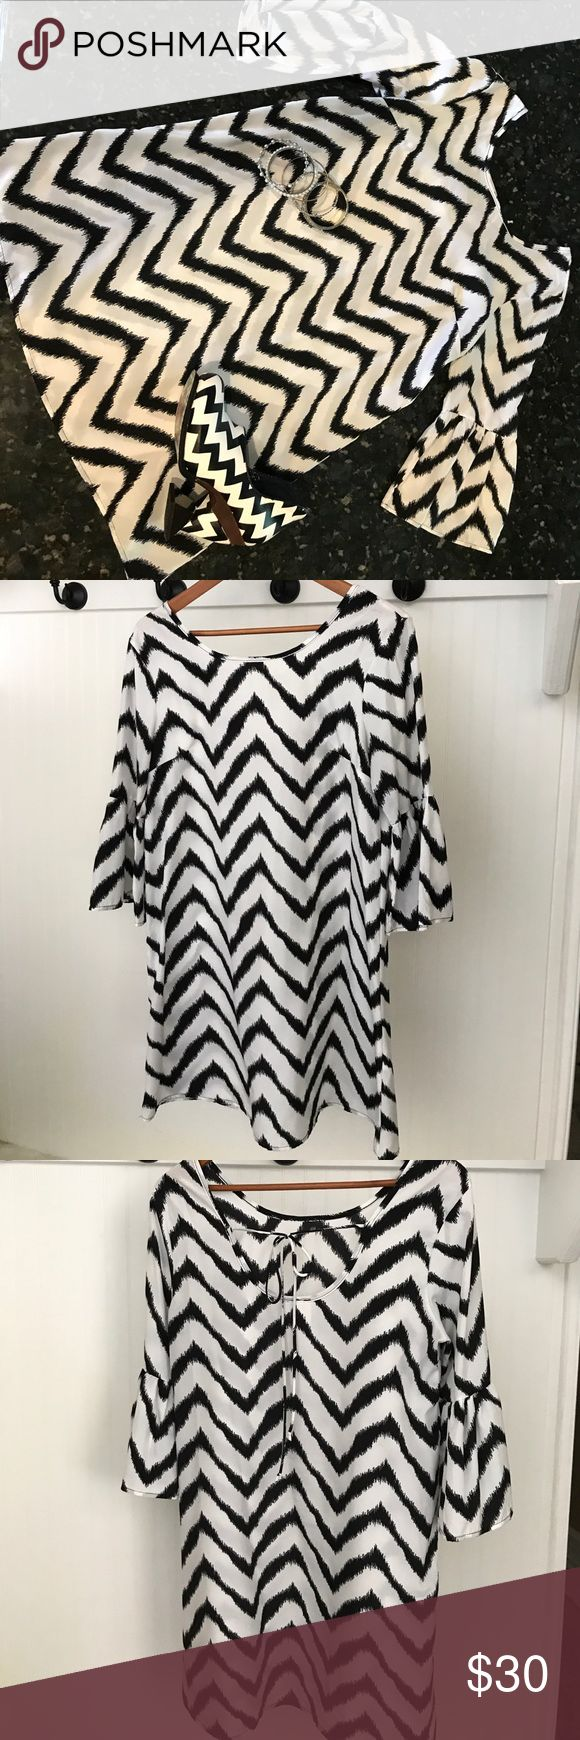 Sun & Moon chevron print dress size M ❤️ This dress is beautiful on!  It has the bell sleeves and is loose fitting making it extremely comfortable!  It has no flaws, stains or snags. Still looks perfect!  Thank you for looking into my closet! Sun n Moon Dresses Midi